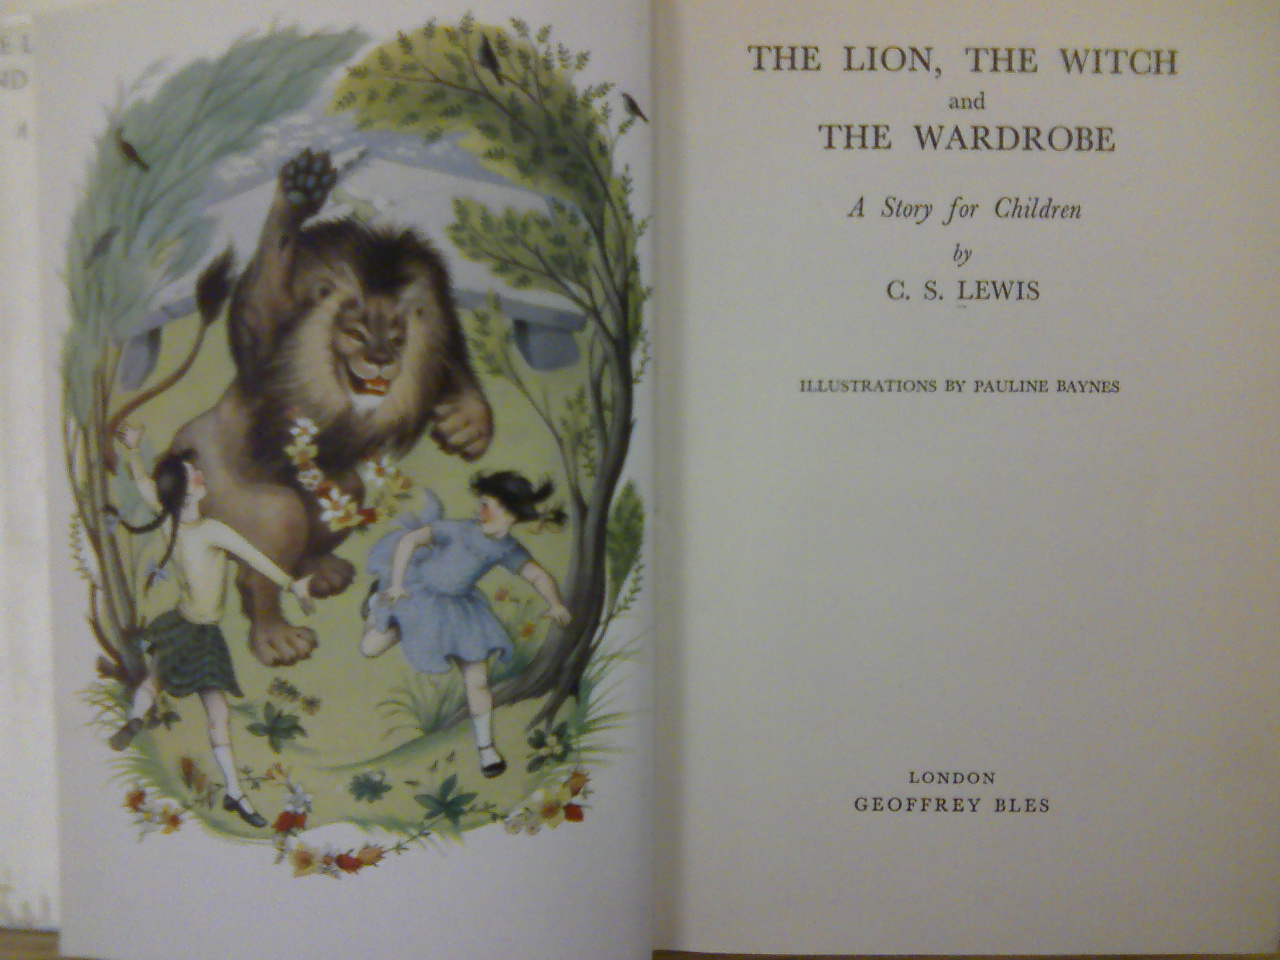 the lion the witch and the wardrobe the only full color image included in the first edition this page mirroring the title page depicts lucy and susan s joyful relationship aslan